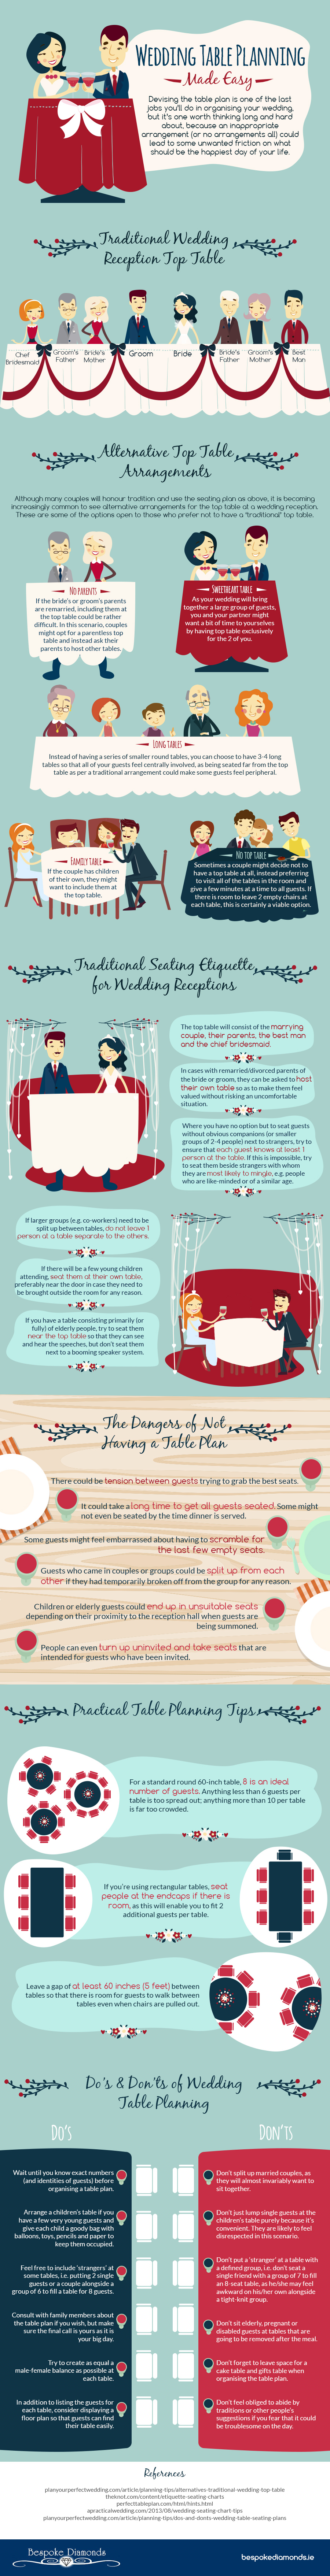 Wedding Table Planning Made Easy